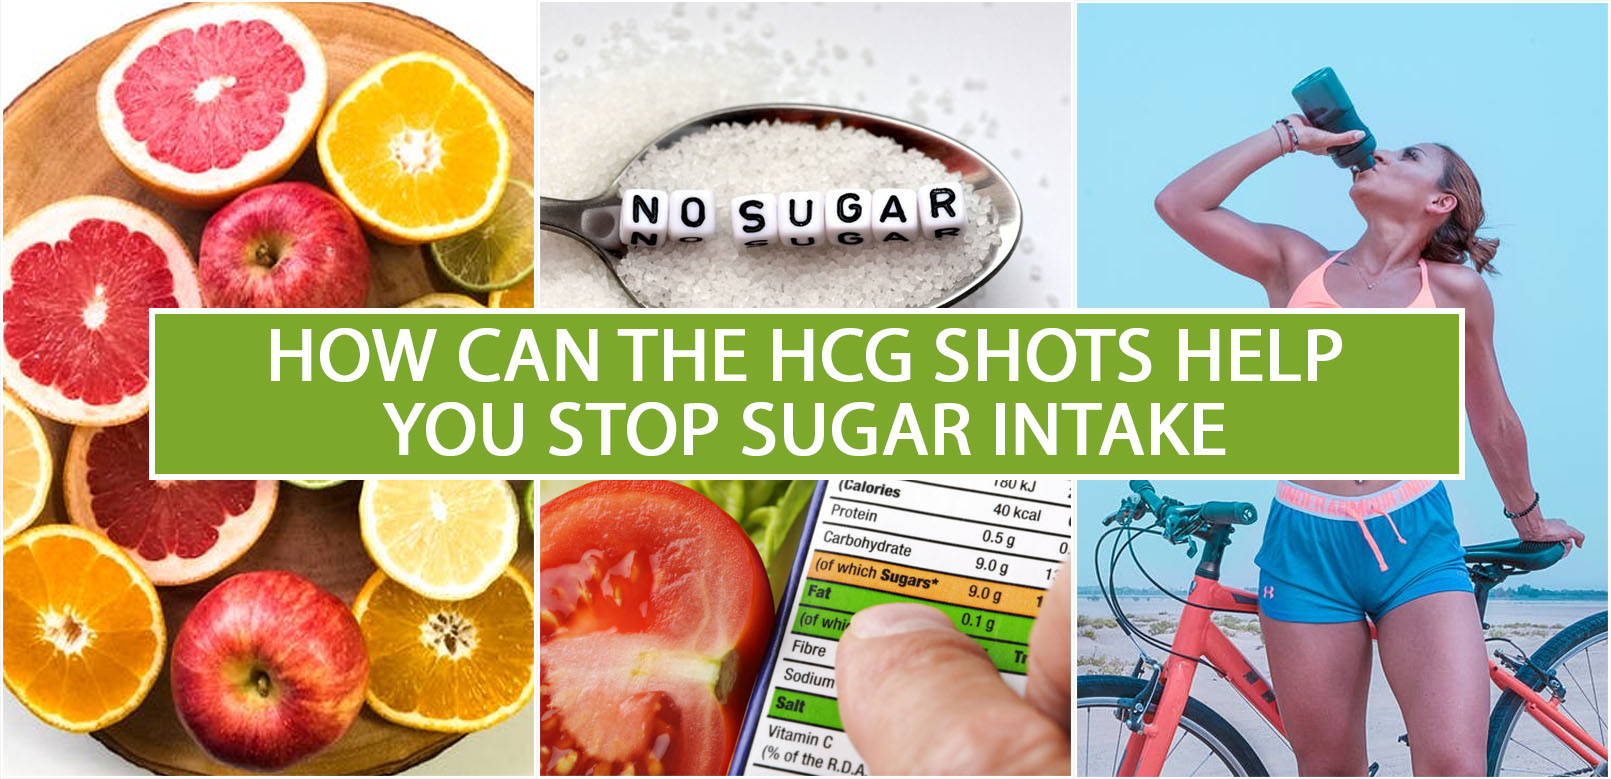 HOW CAN THE HCG SHOTS HELP YOU STOP SUGAR INTAKE